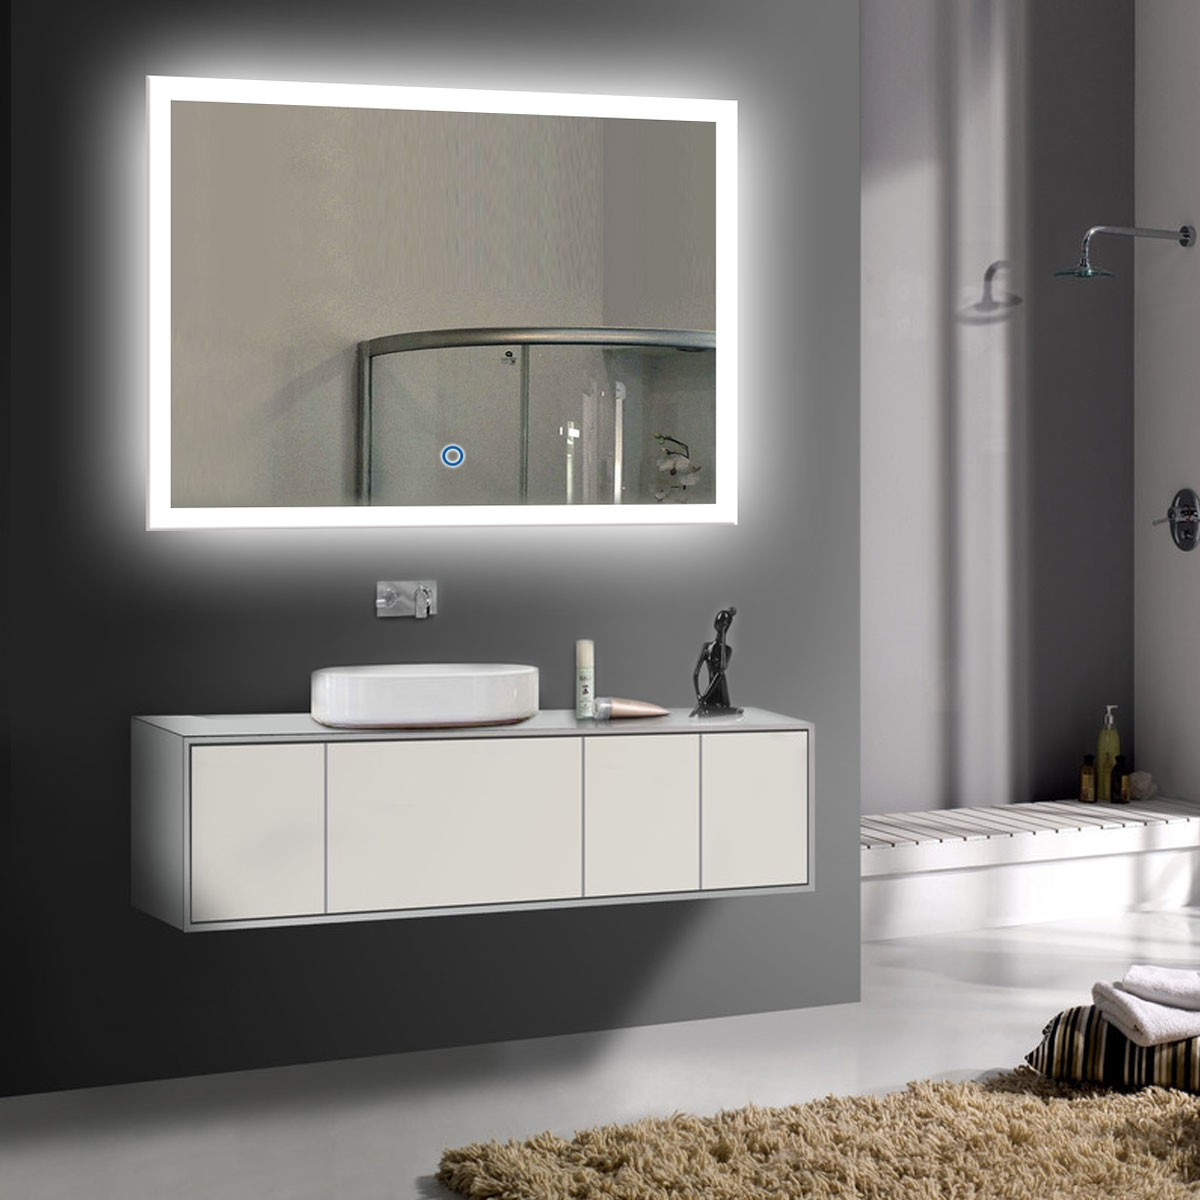 36 x 28 in horizontal led bathroom silvered mirror with 10826